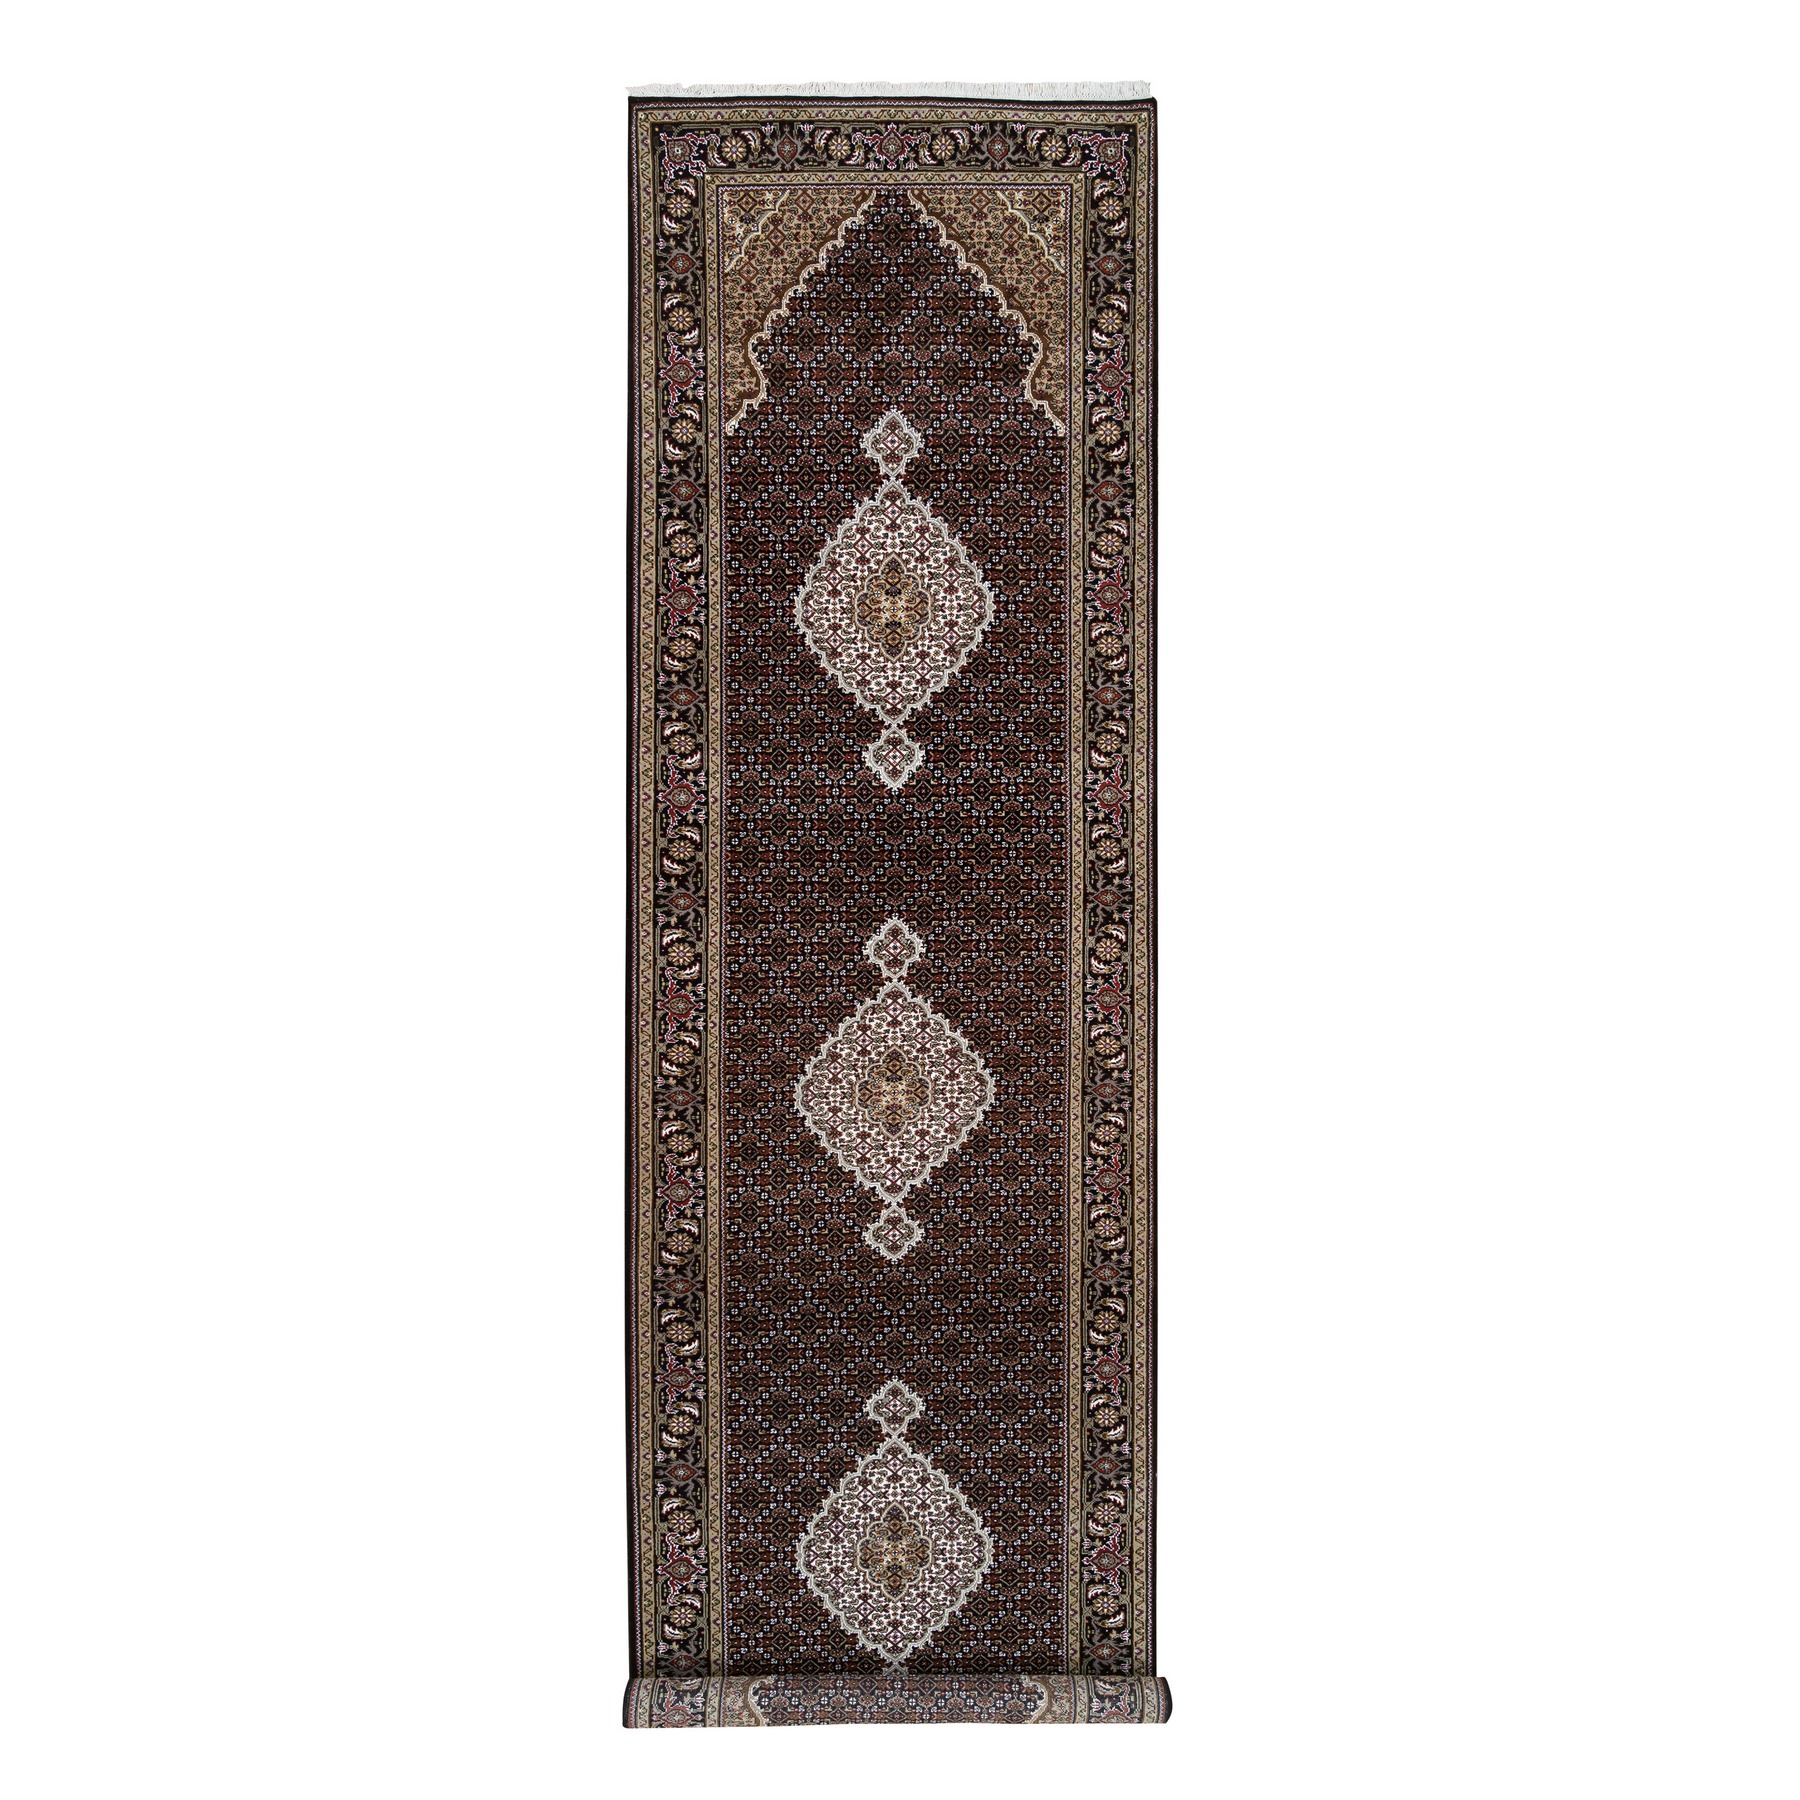 Pirniakan Collection Hand Knotted Black Rug No: 1126584